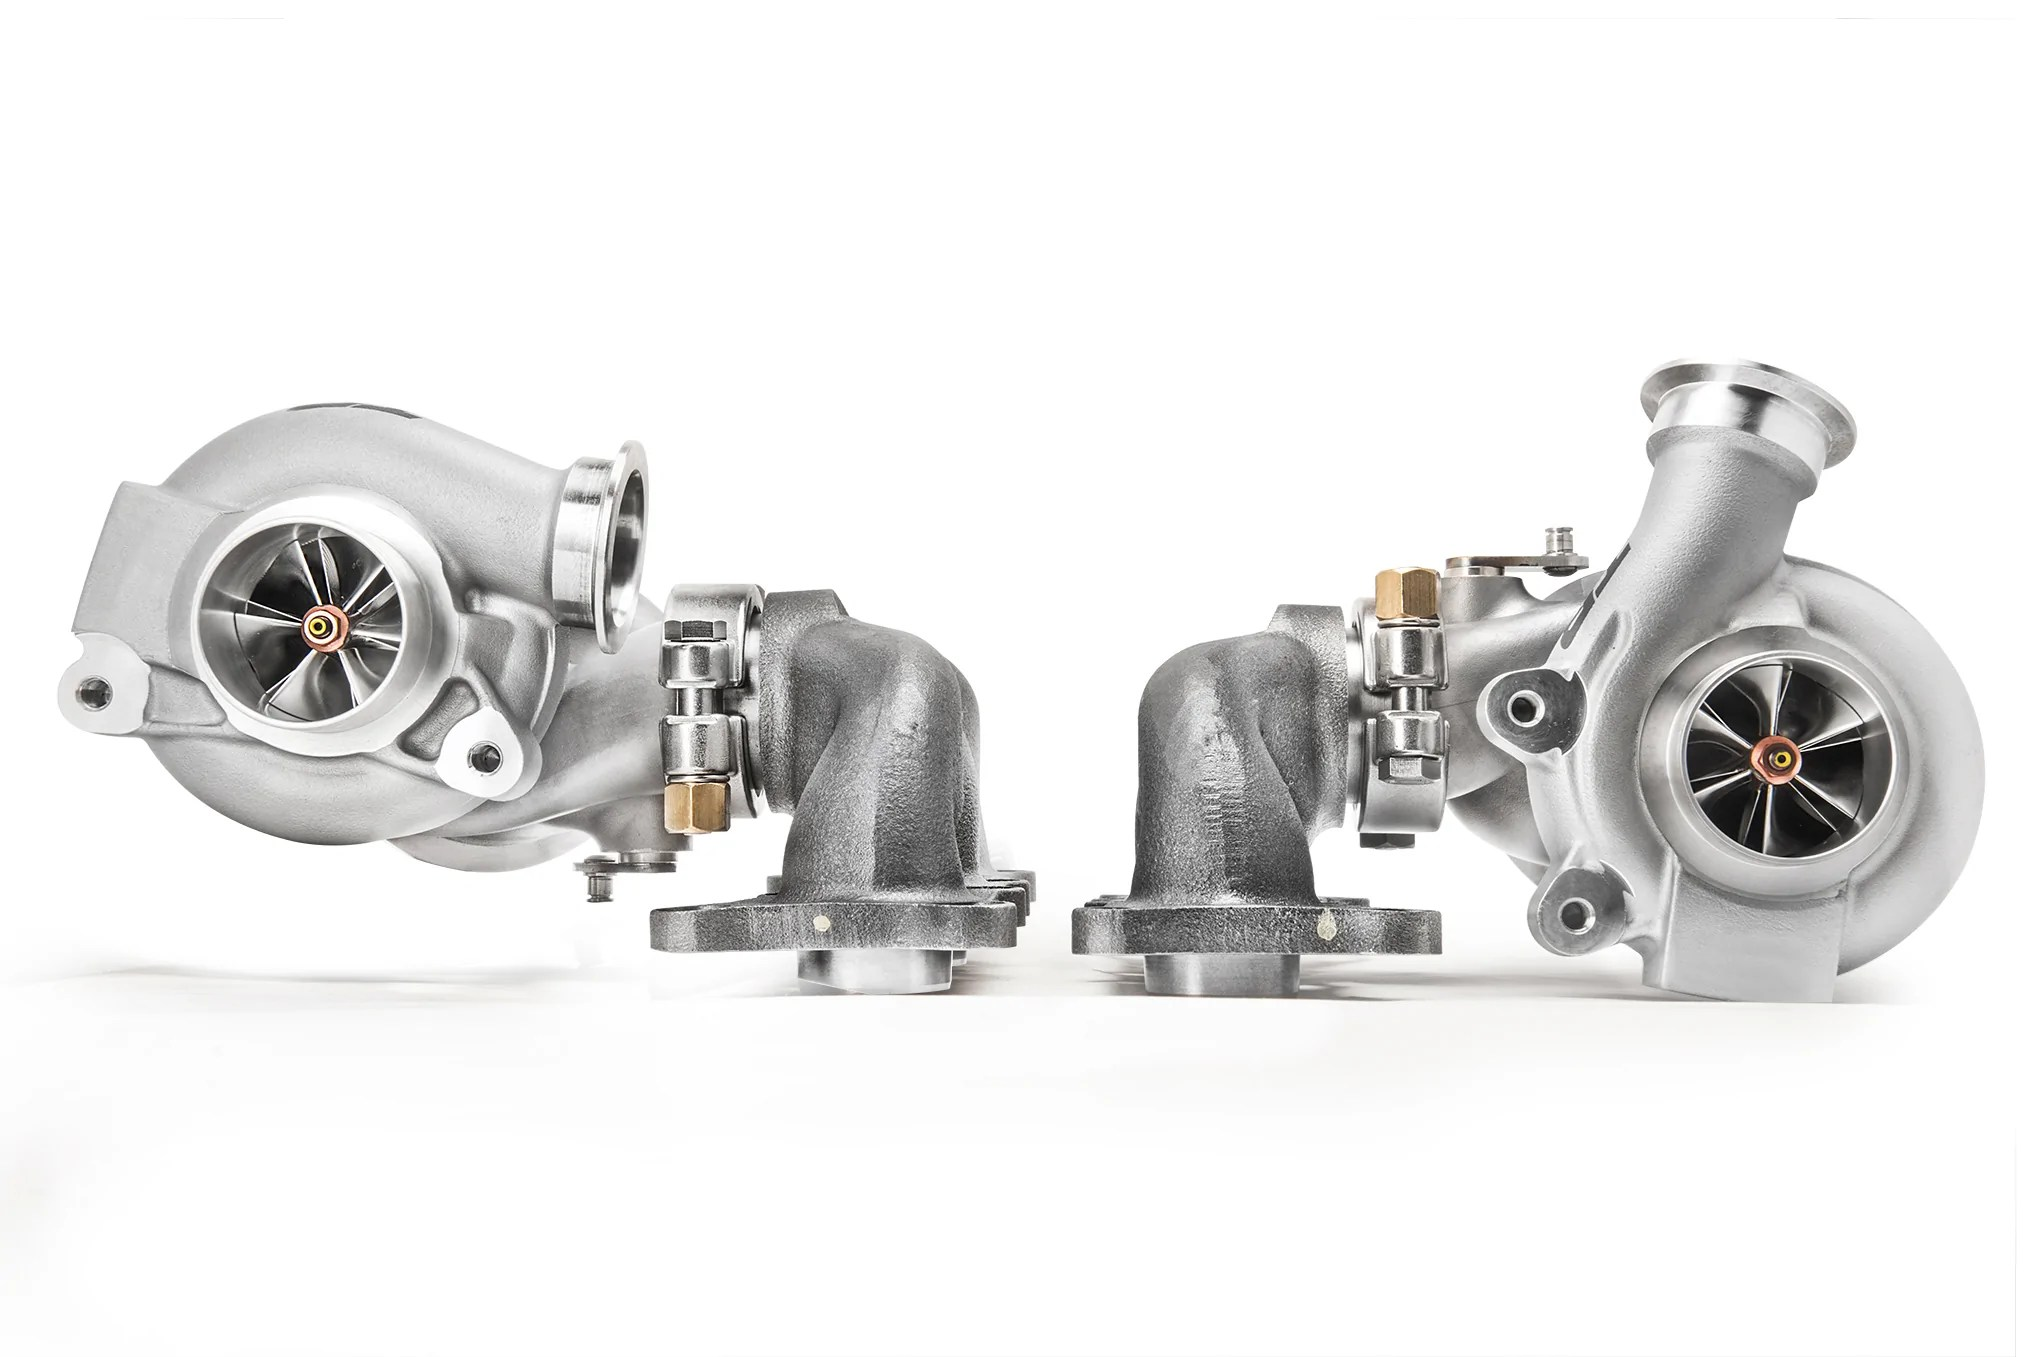 tr twin turbo upgrade for bmw n54 [ 2038 x 1357 Pixel ]